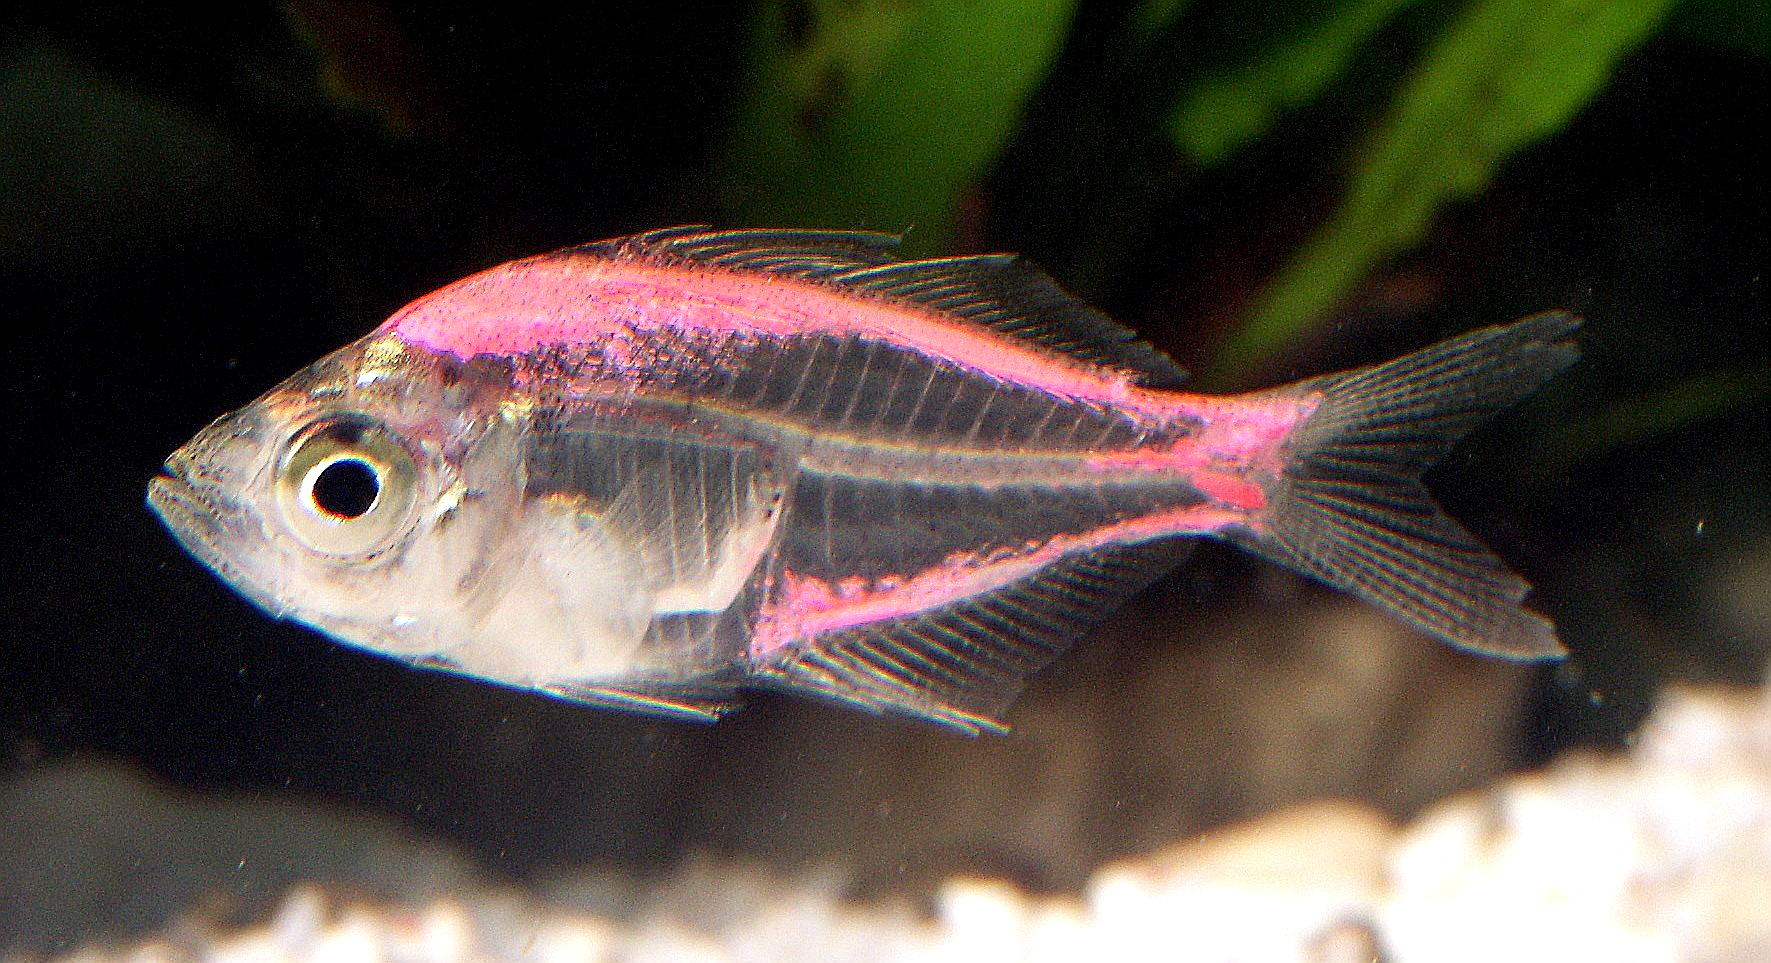 File:Painted Indian Glassy Fish.jpg - Wikipedia